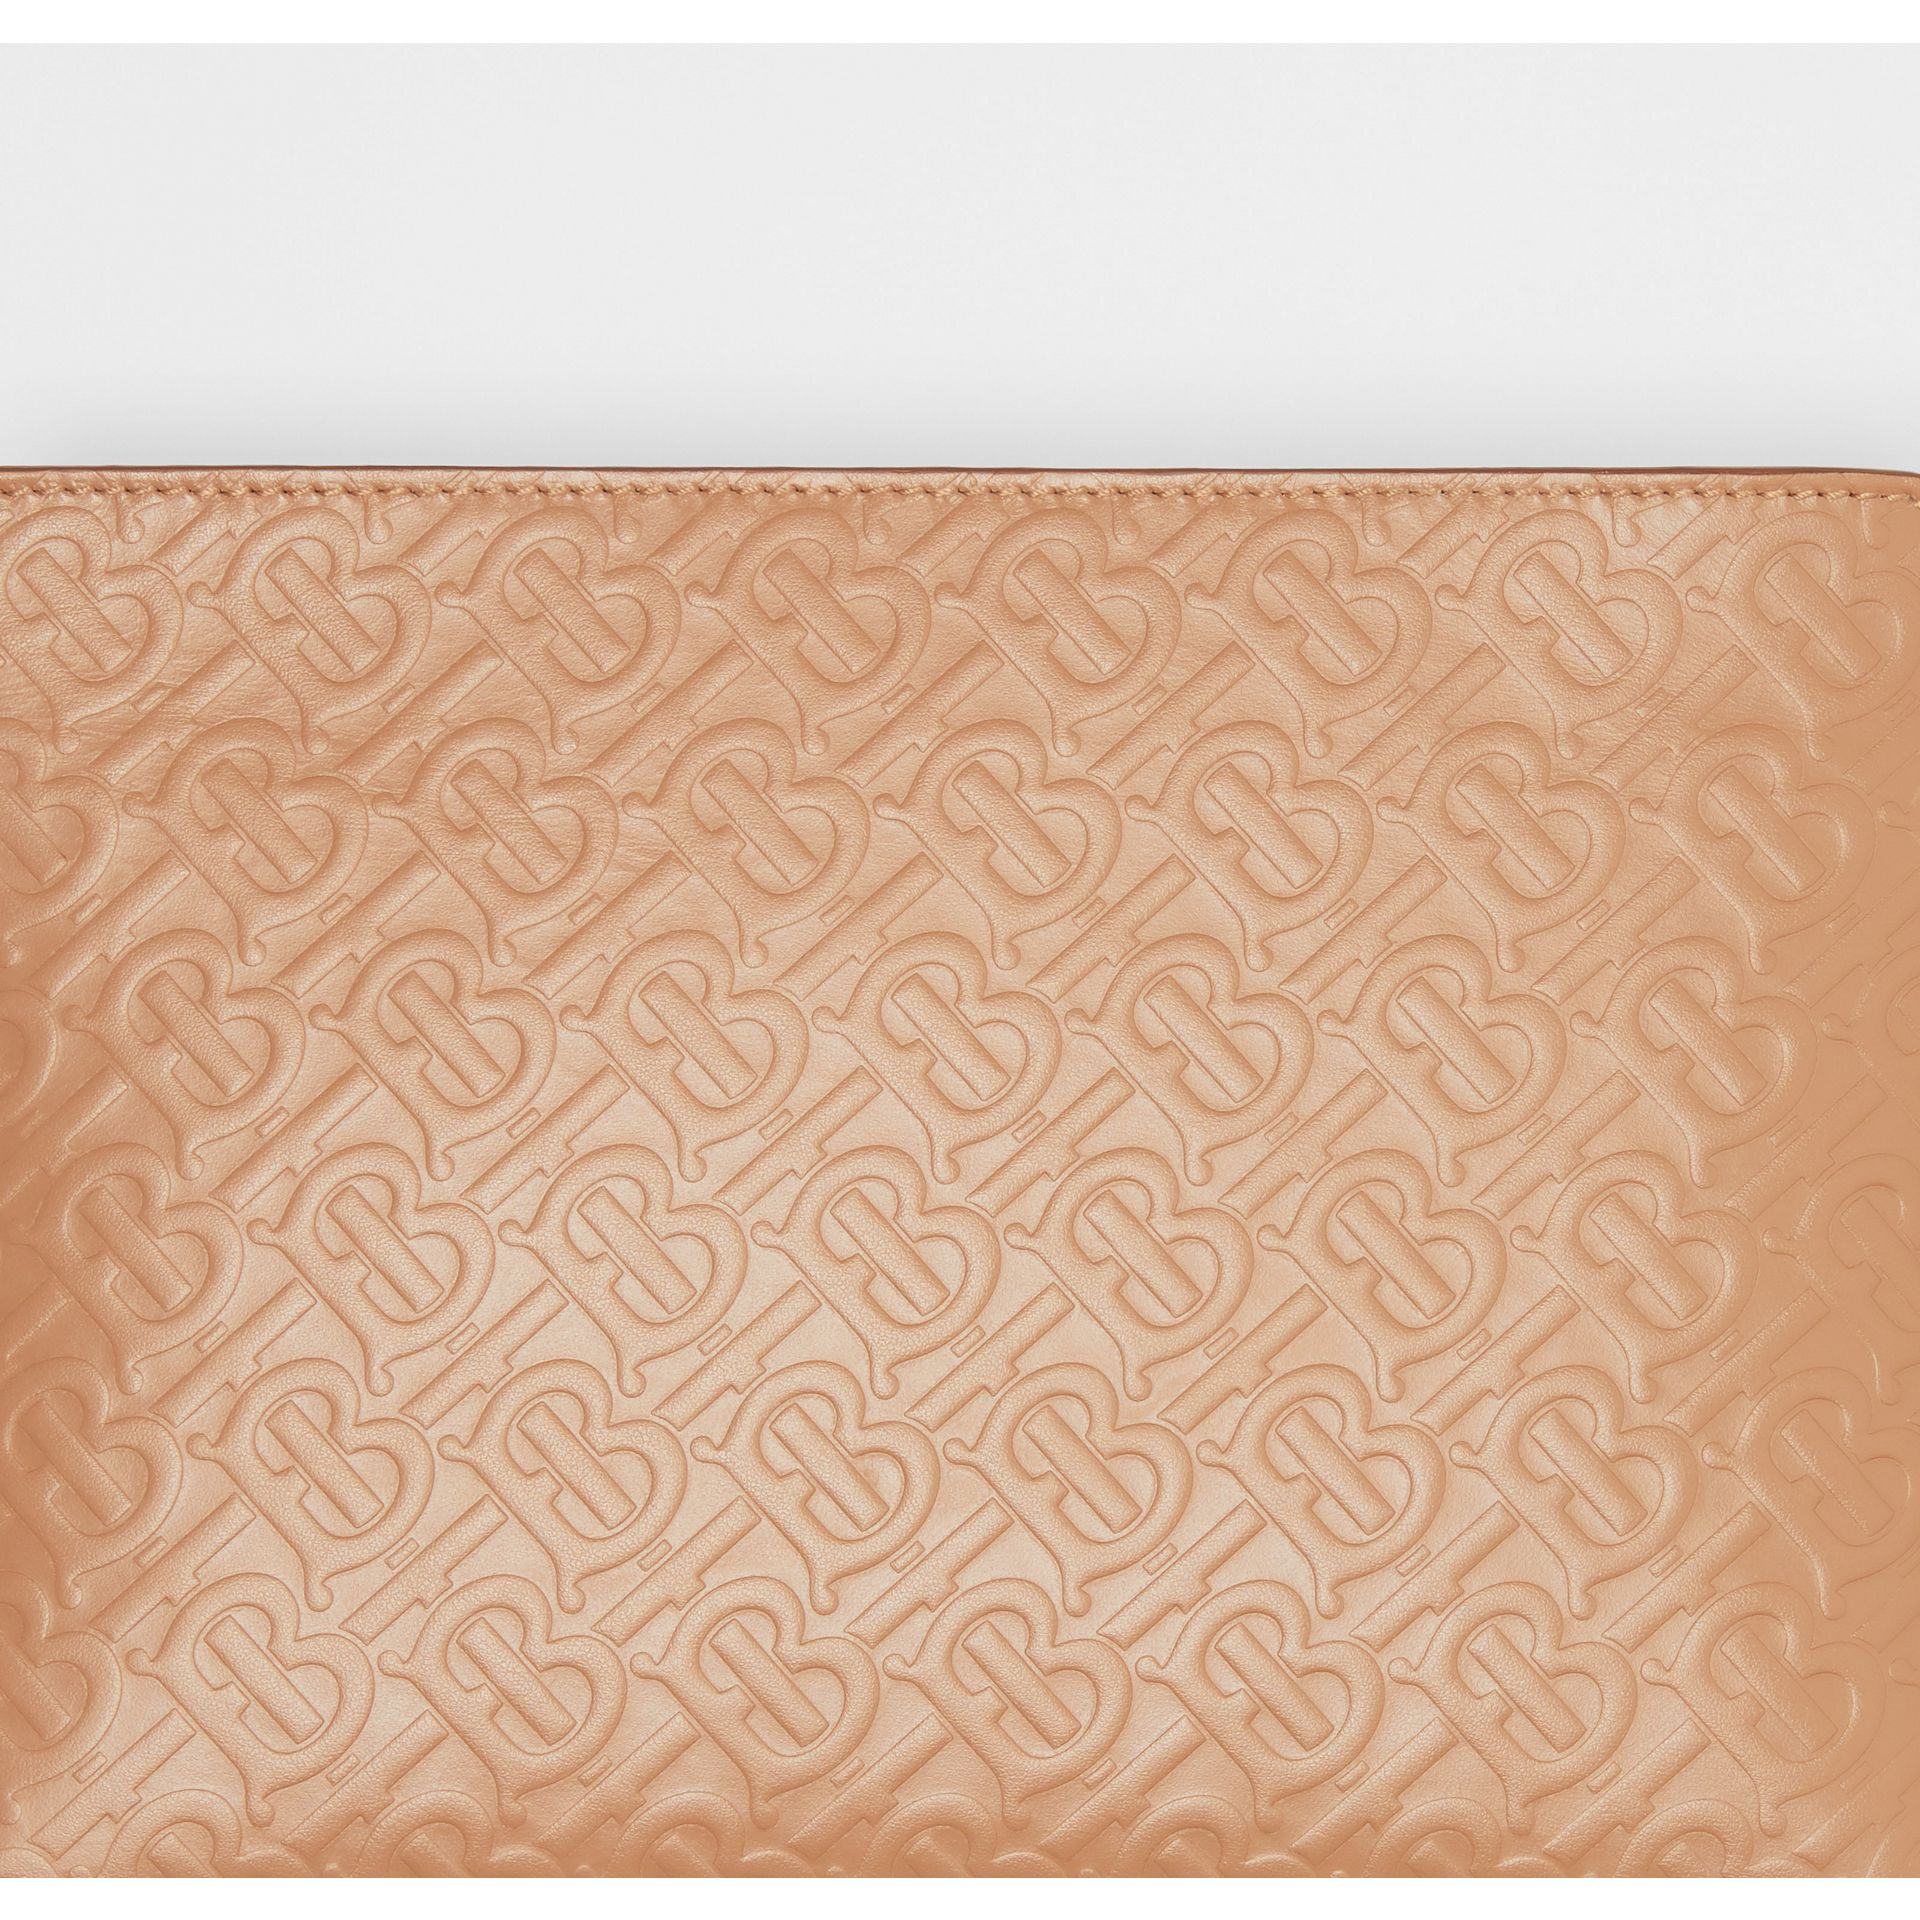 Medium Monogram Leather Clutch in Light Camel - Women | Burberry United States - gallery image 1